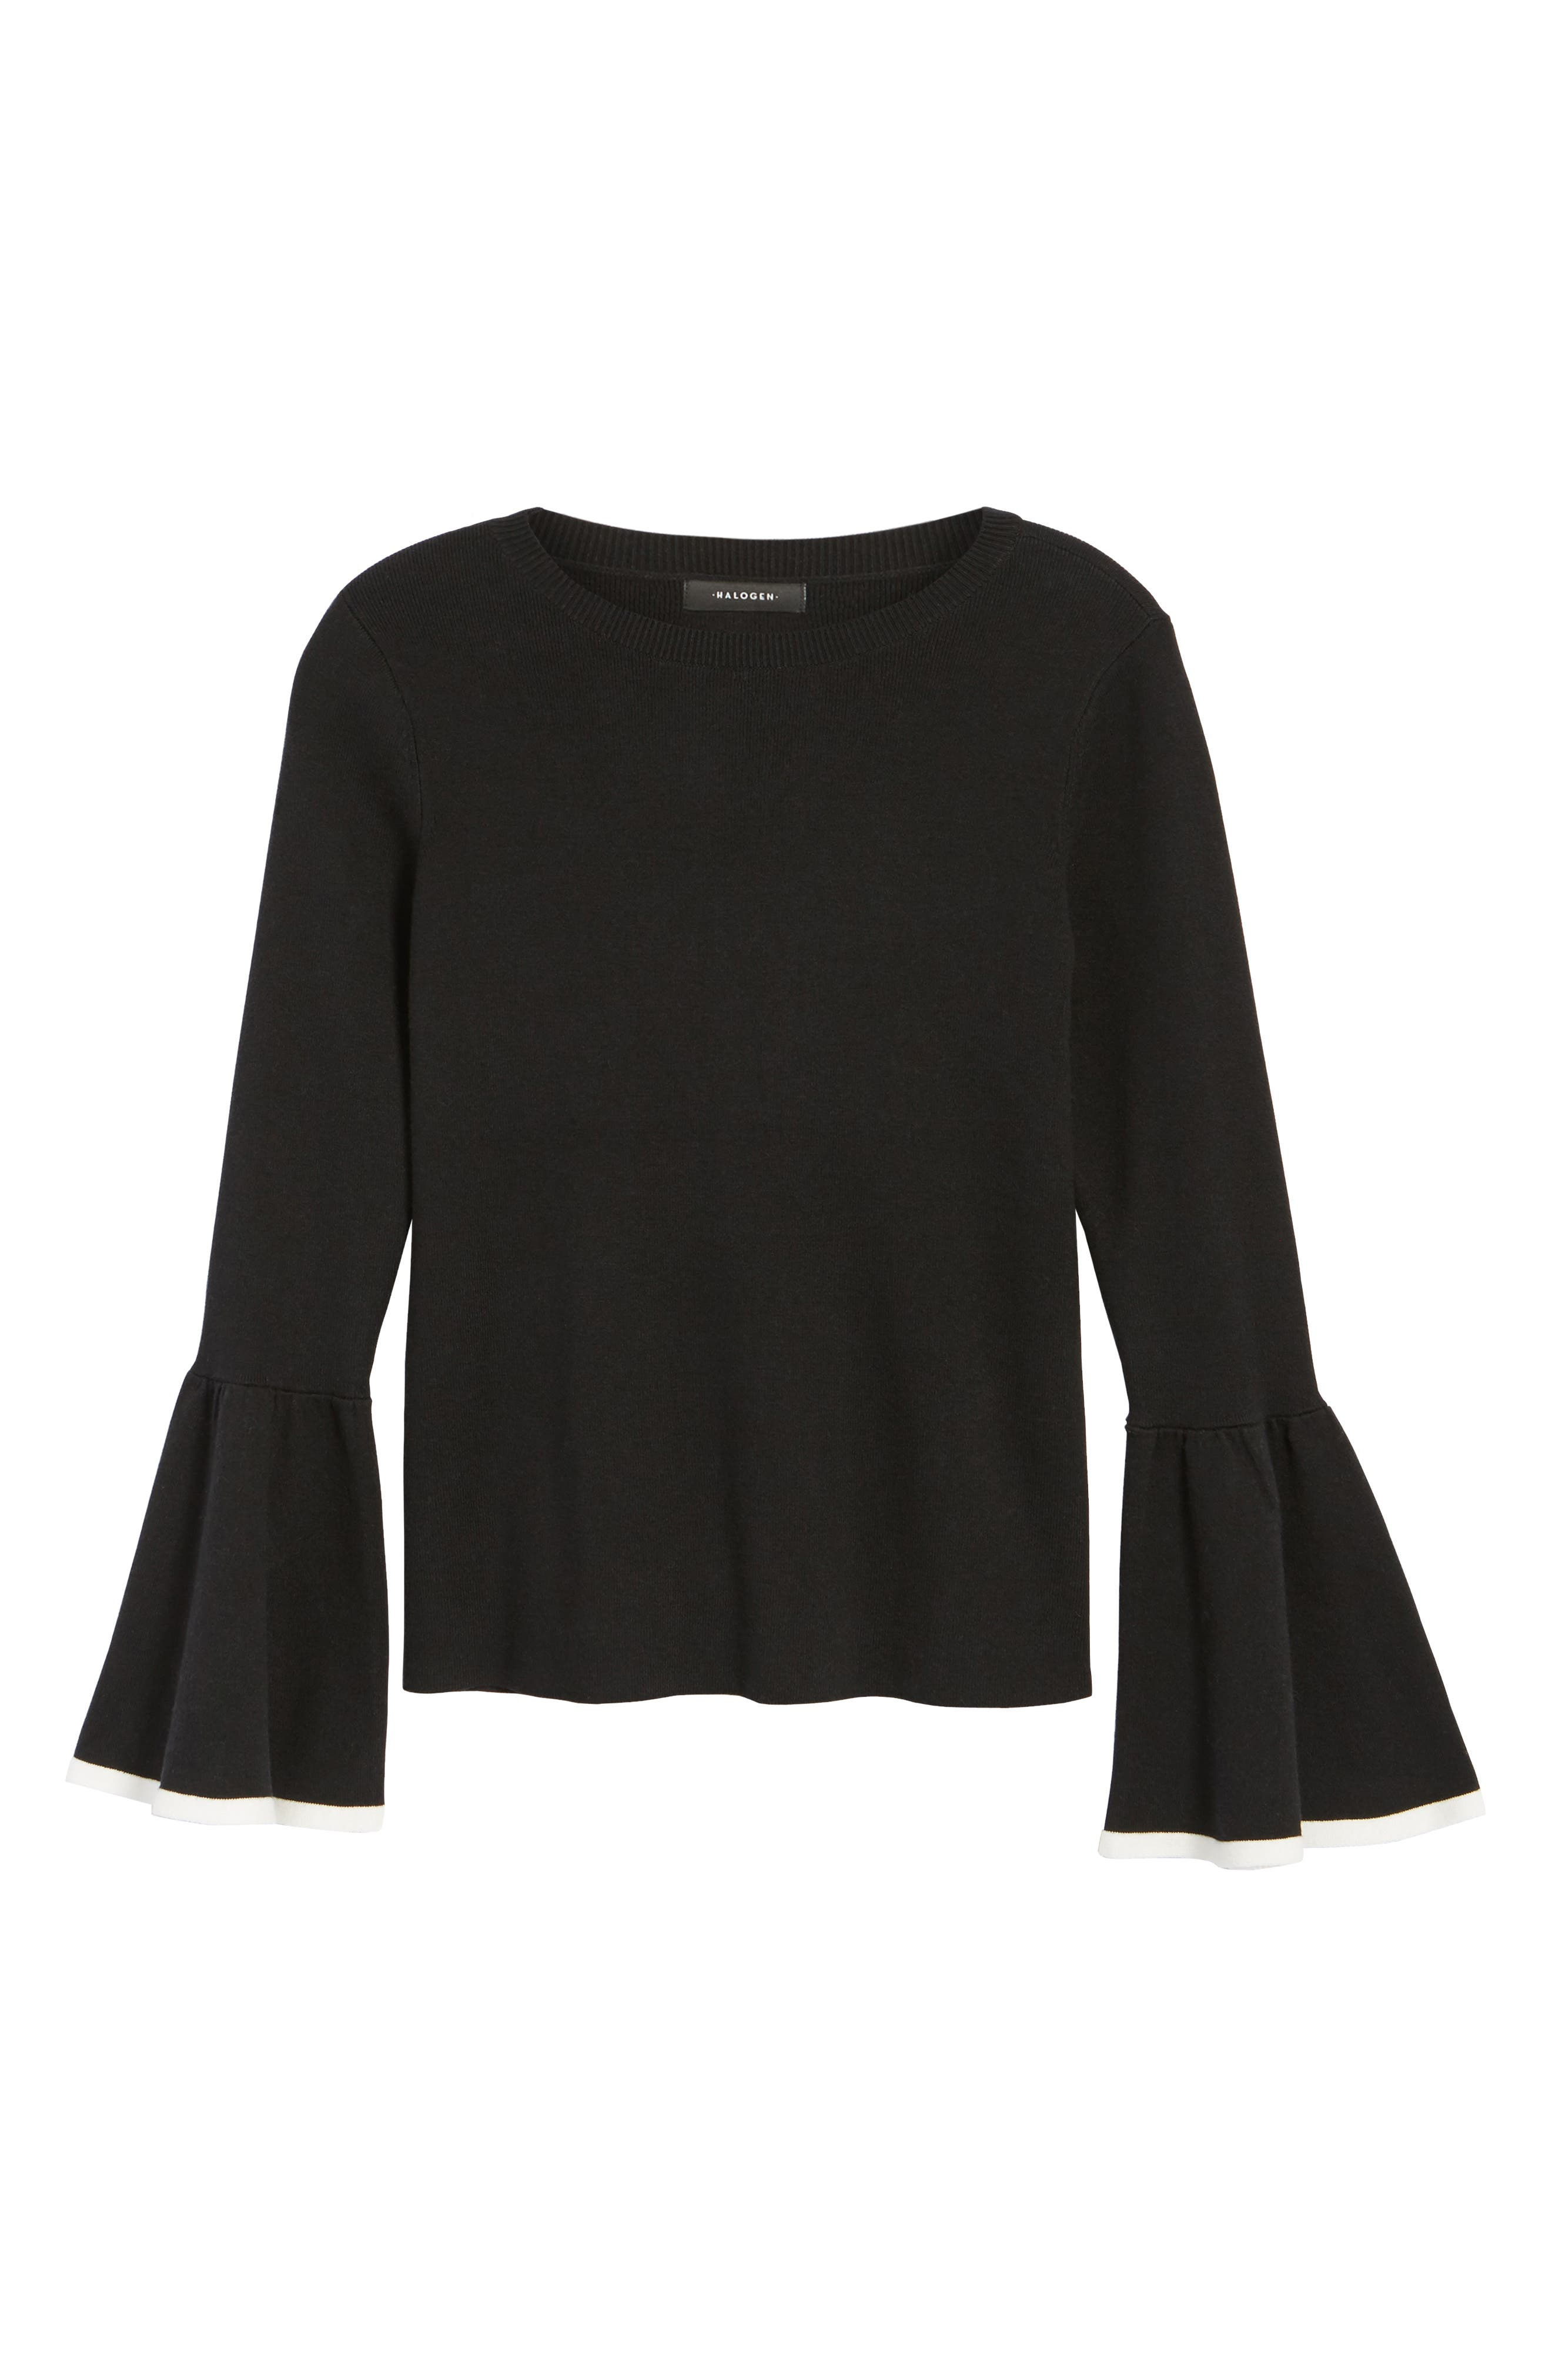 Flare Sleeve Sweater,                             Alternate thumbnail 6, color,                             001